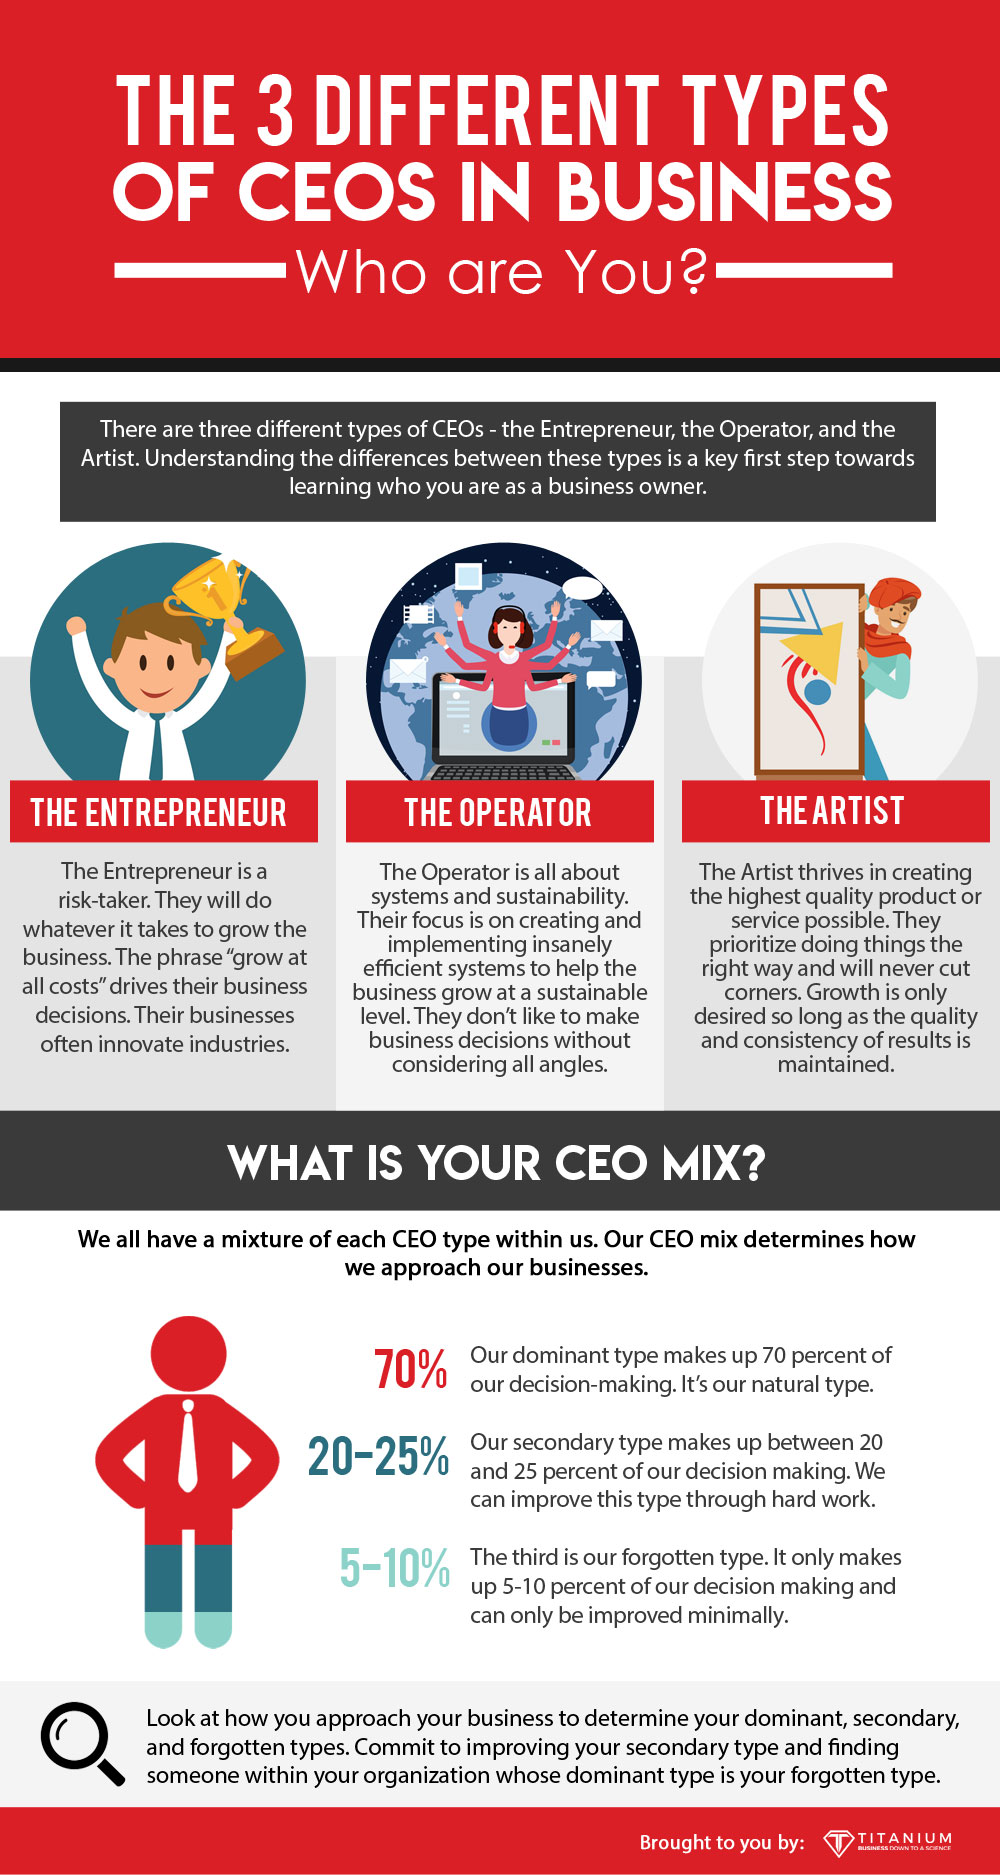 3 different types of CEOs in business